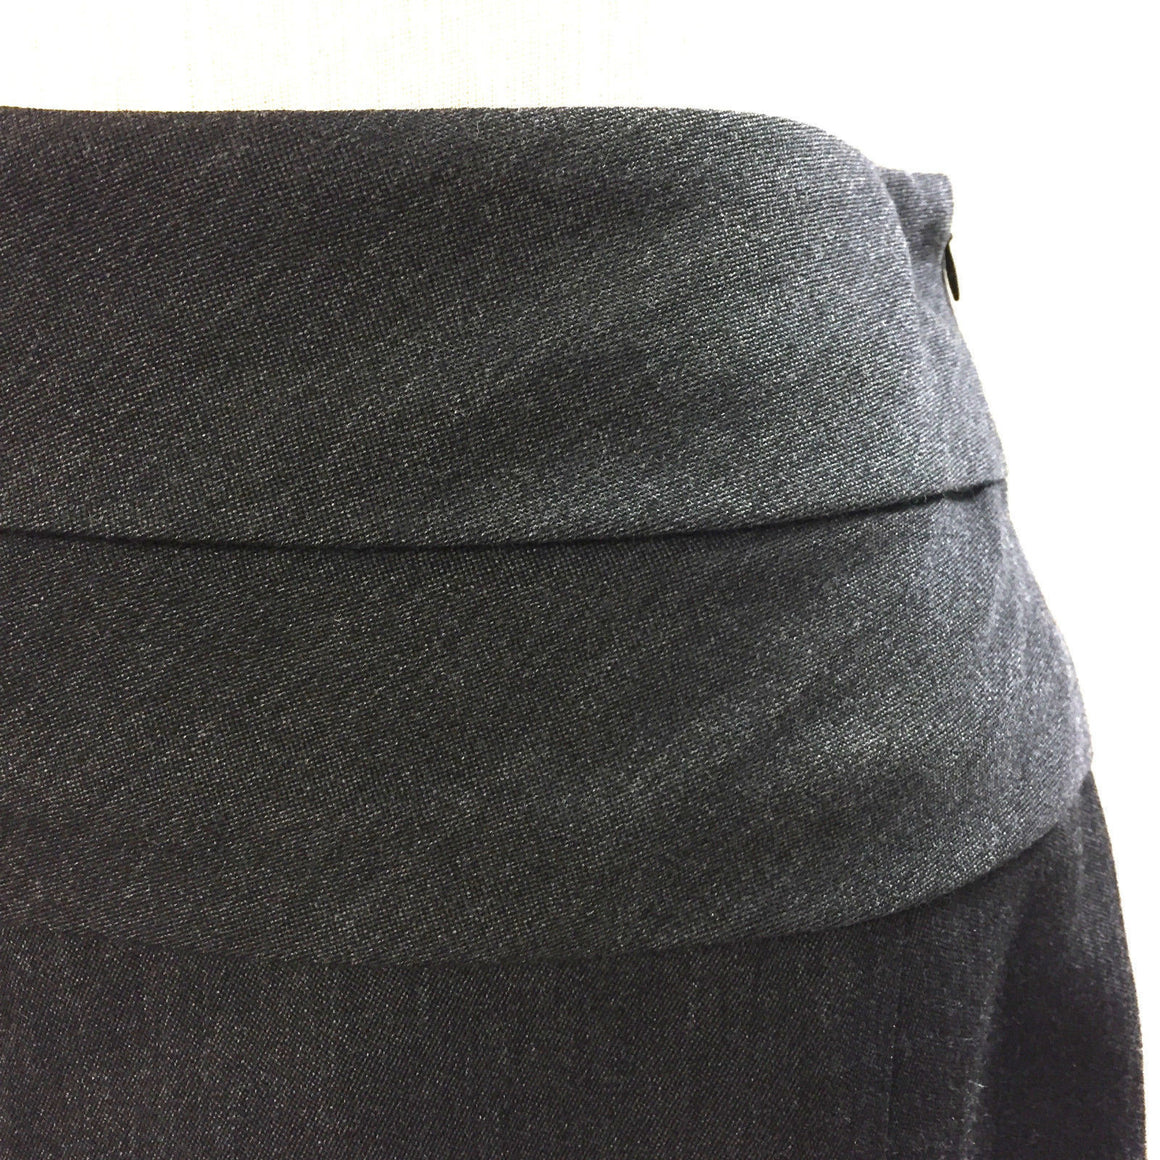 bisbiz.com MARNI Charcoal Wool Tiered Waist A-Line Skirt Skirt  Size: IT 38 / US 4 - Bis Luxury Resale